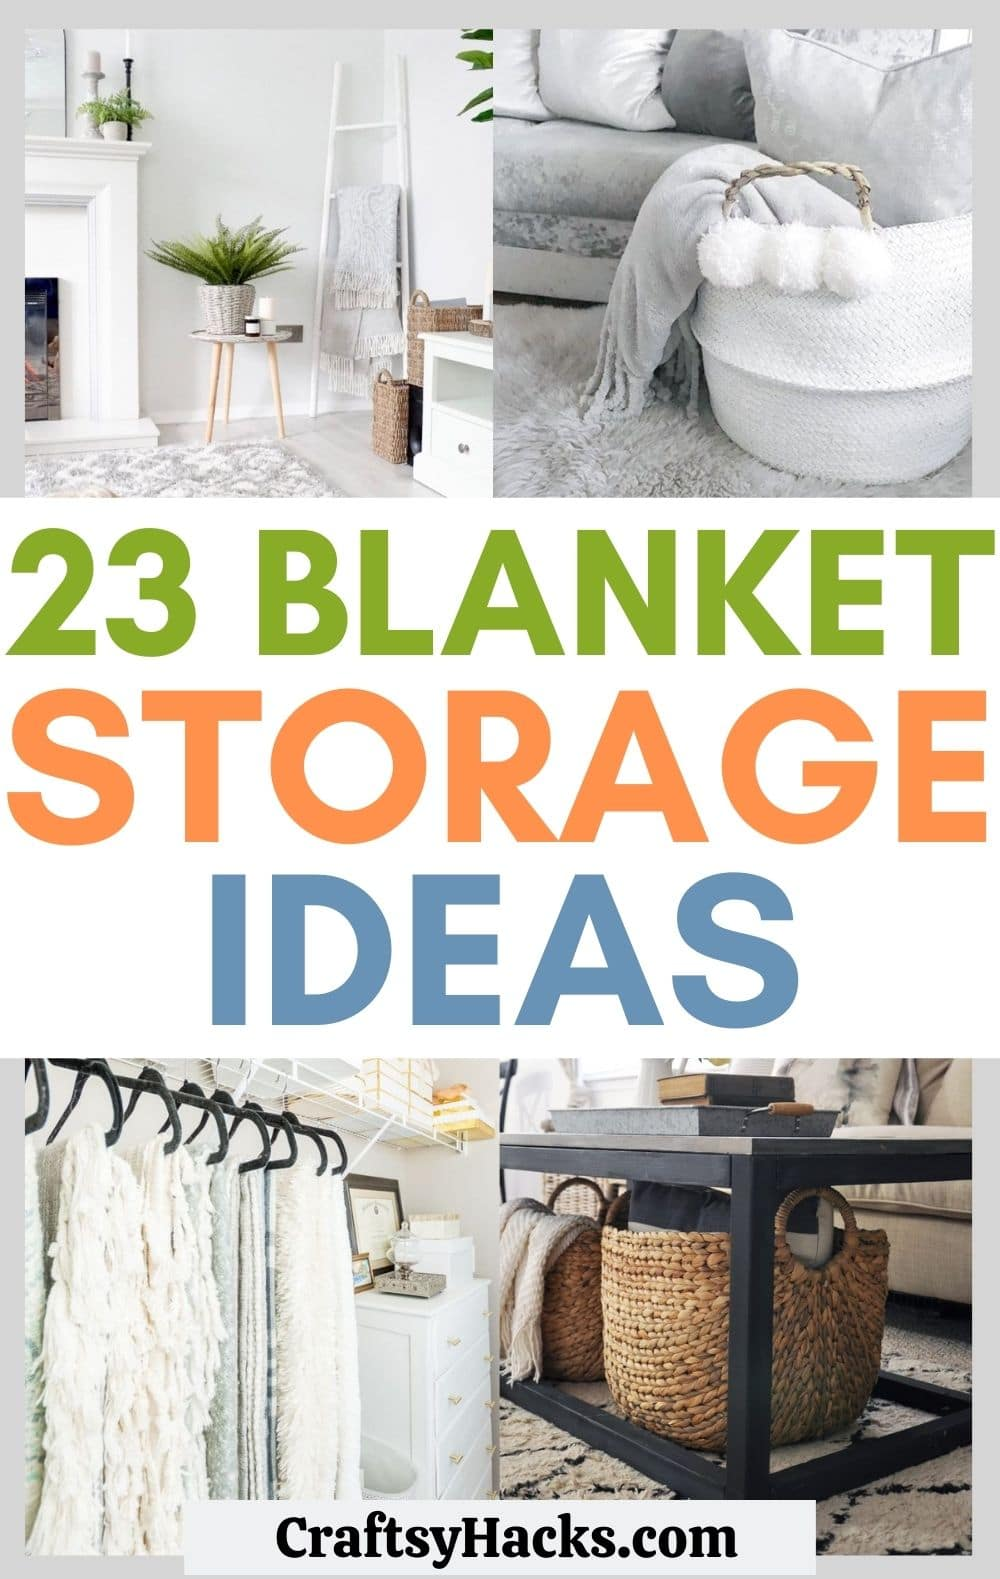 blanket storage ideas